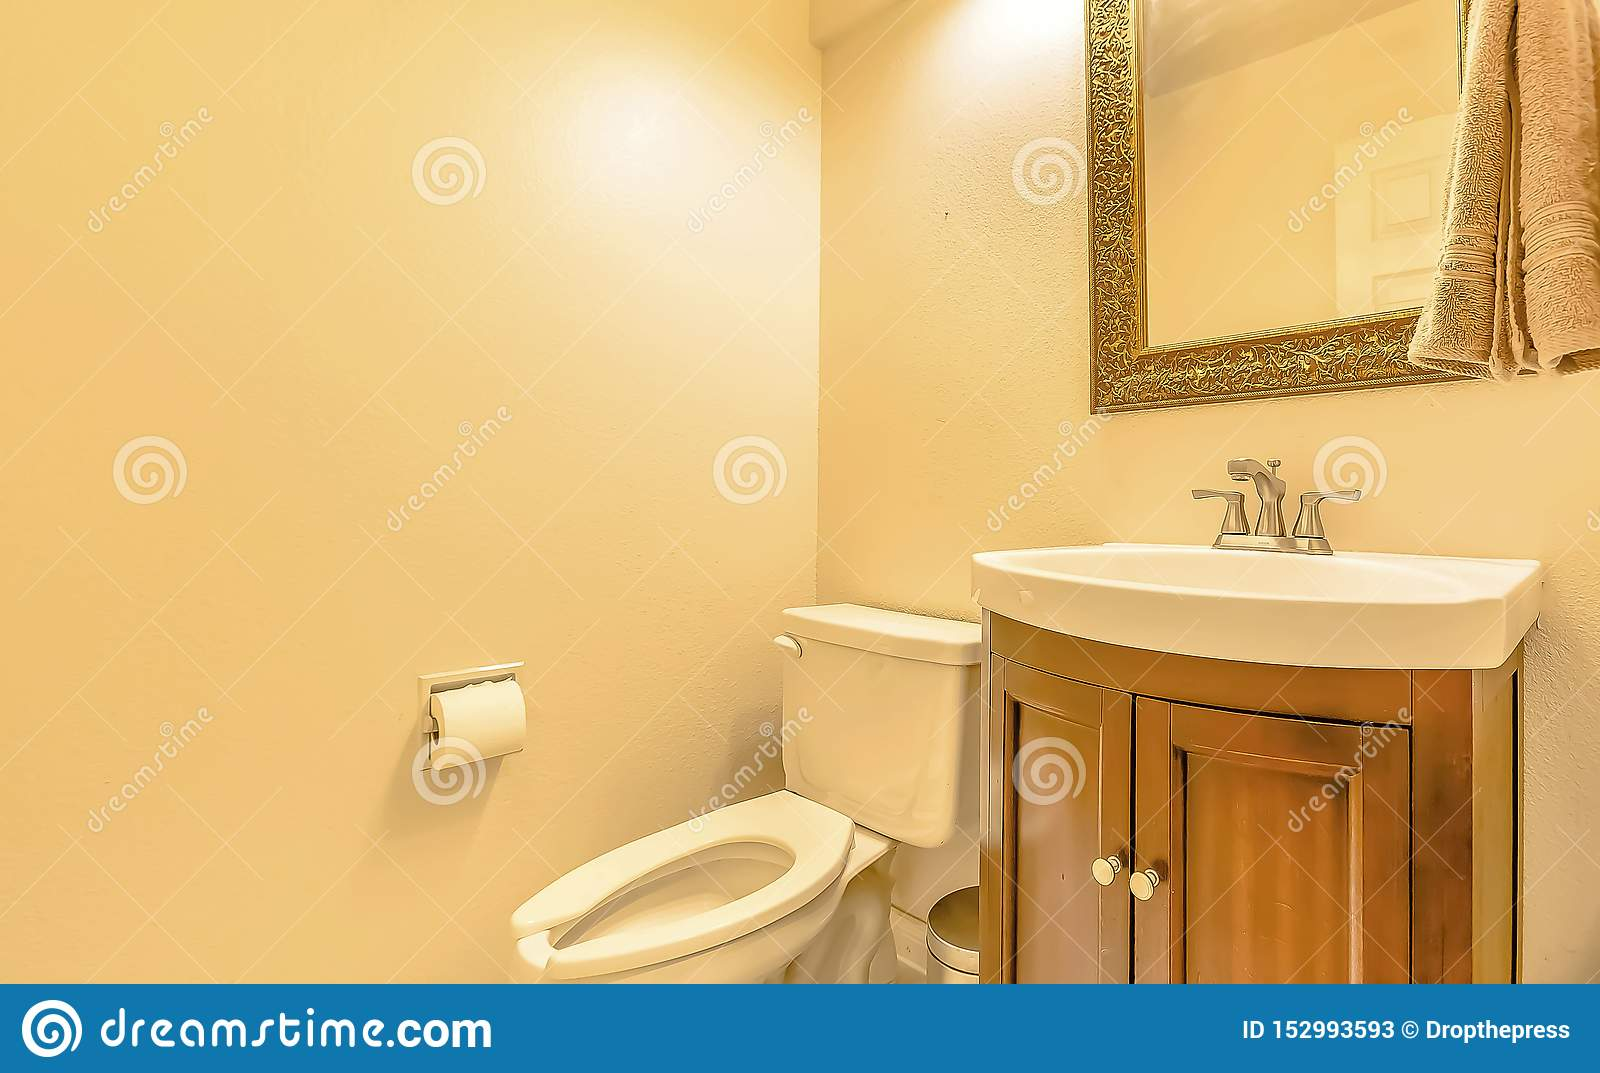 Picture of: Toilet And Sink Inside The Bathroom Of A House With Cream Colored Wall Stock Image Image Of Architectural Clean 152993593